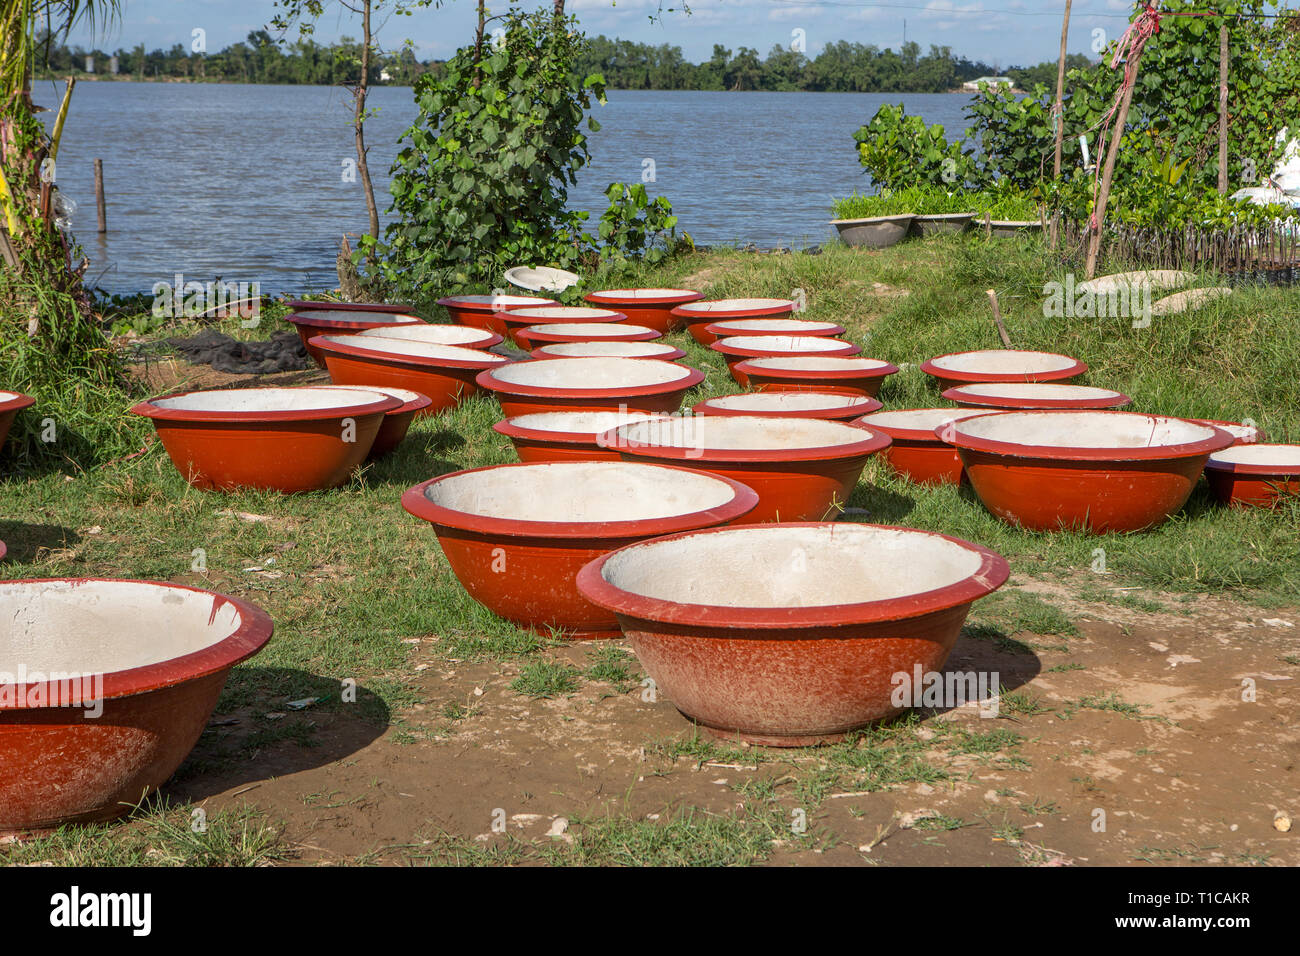 A plant pot factory in the Mekong Delta, Vietnam. - Stock Image